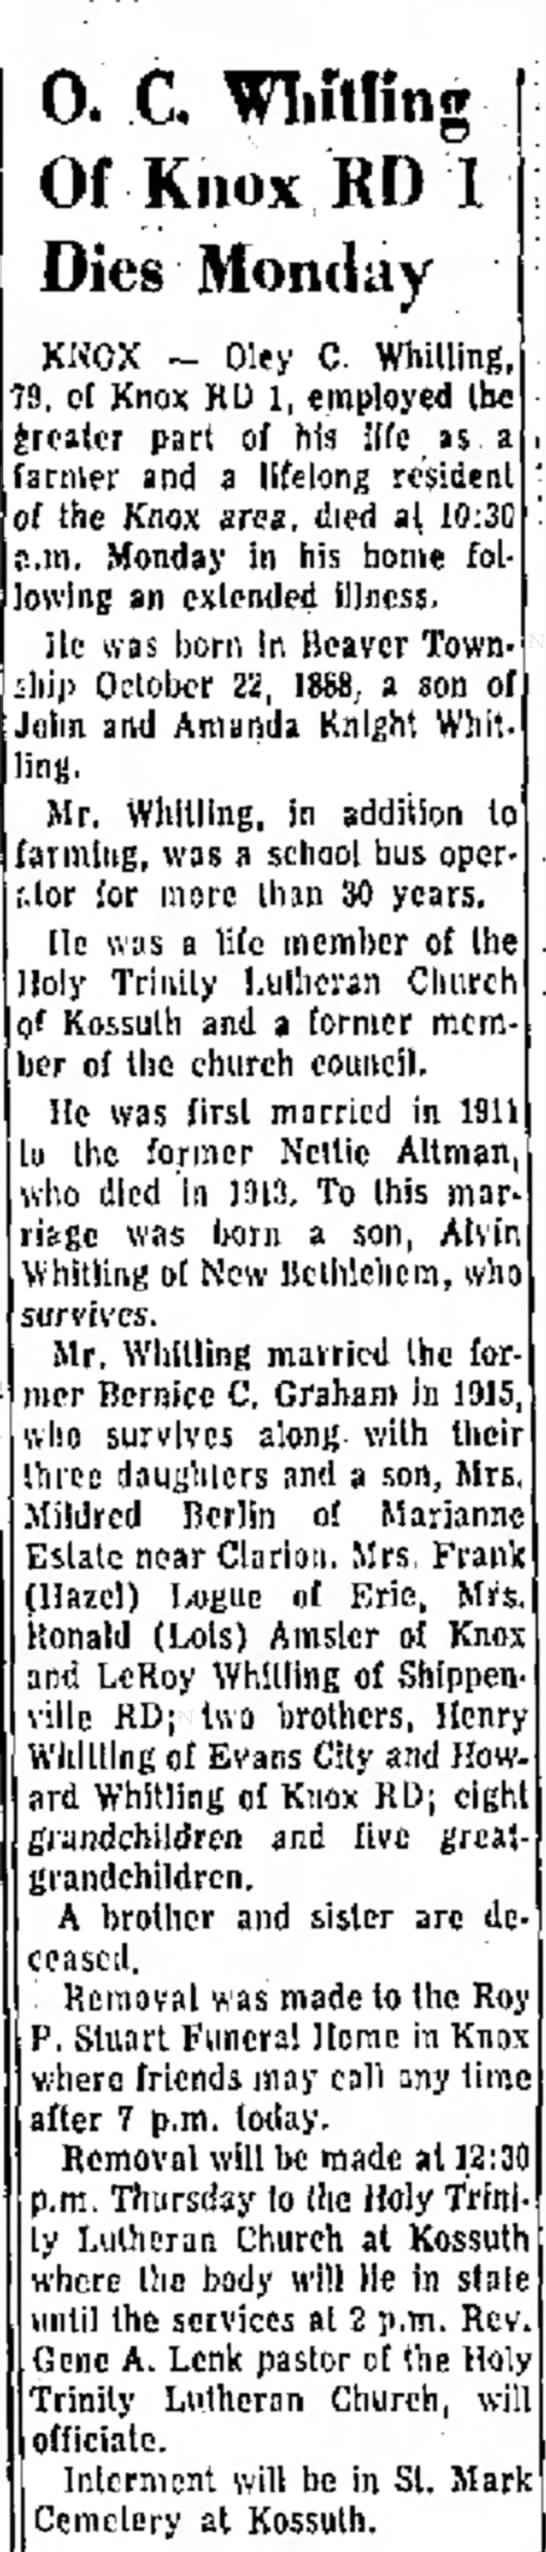 Oley C Whitling obit April 30 1968 - M. Plant registered of the Wednesday. 0, C...